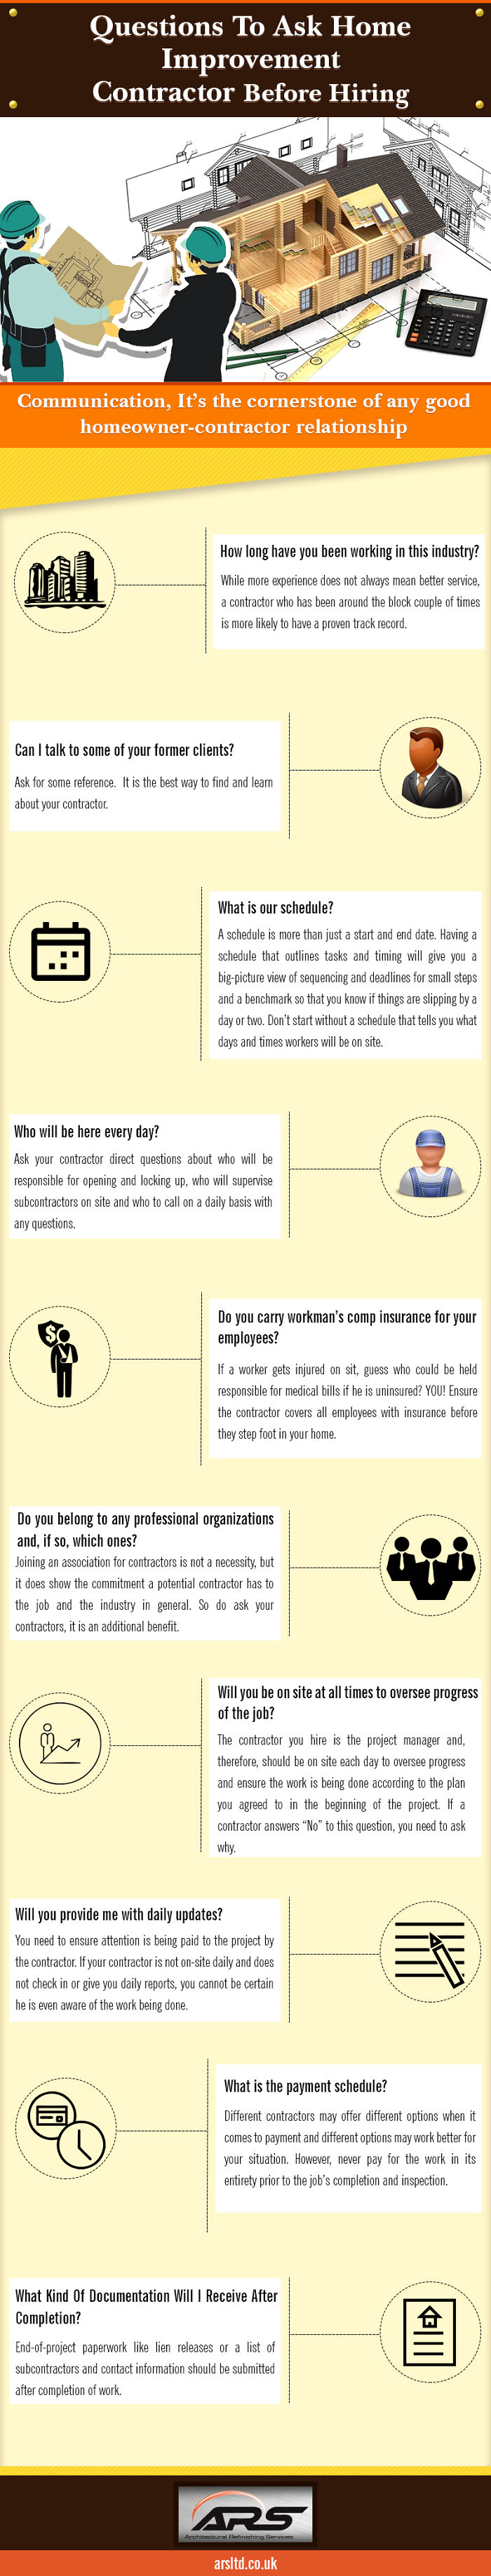 Questions To Ask Home Improvement Contractor Before Hiring